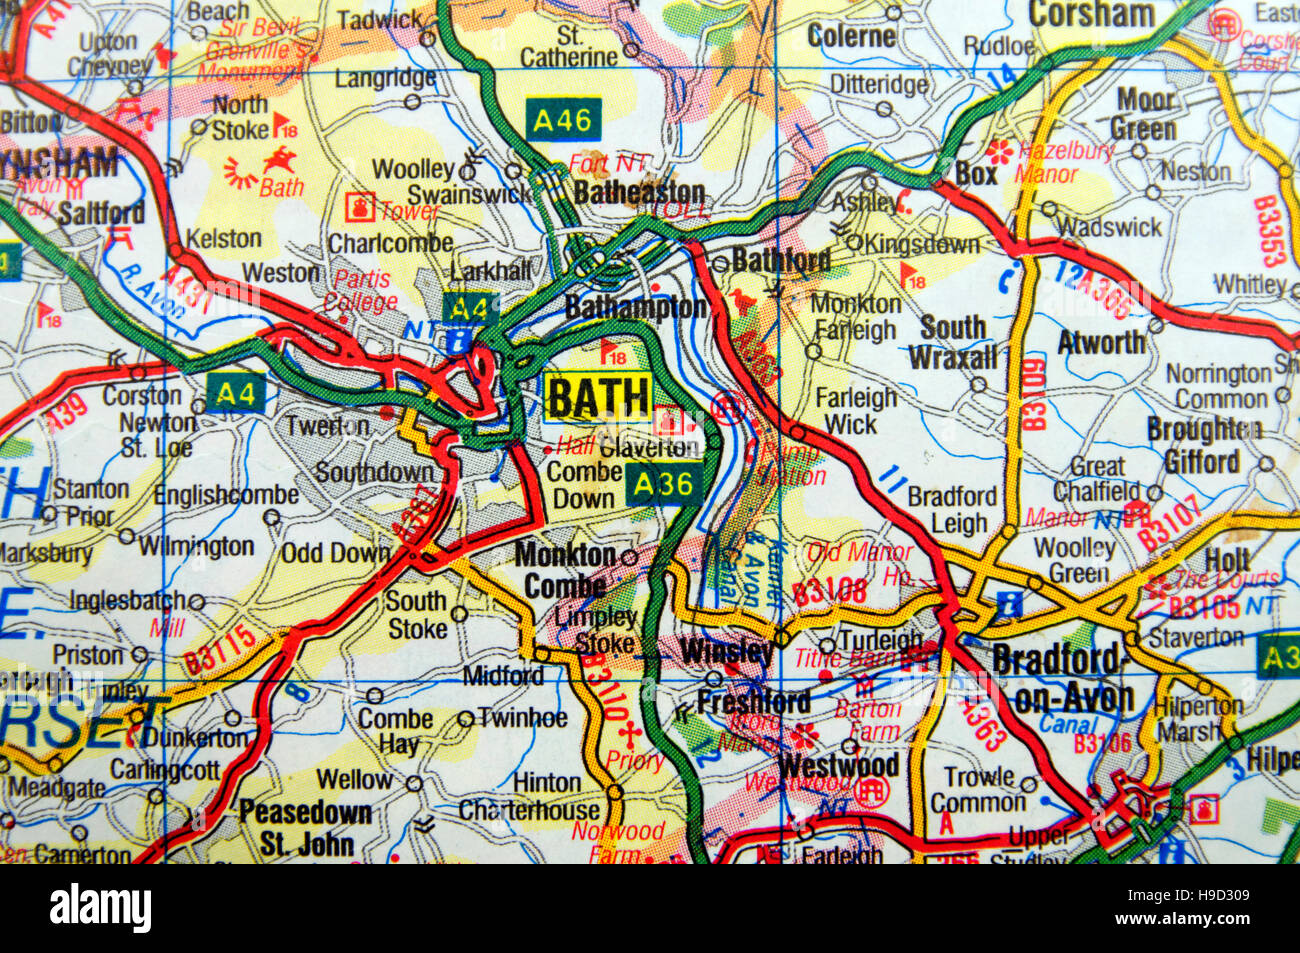 Road Map of Bath, England Stock Photo: 126292217   Alamy